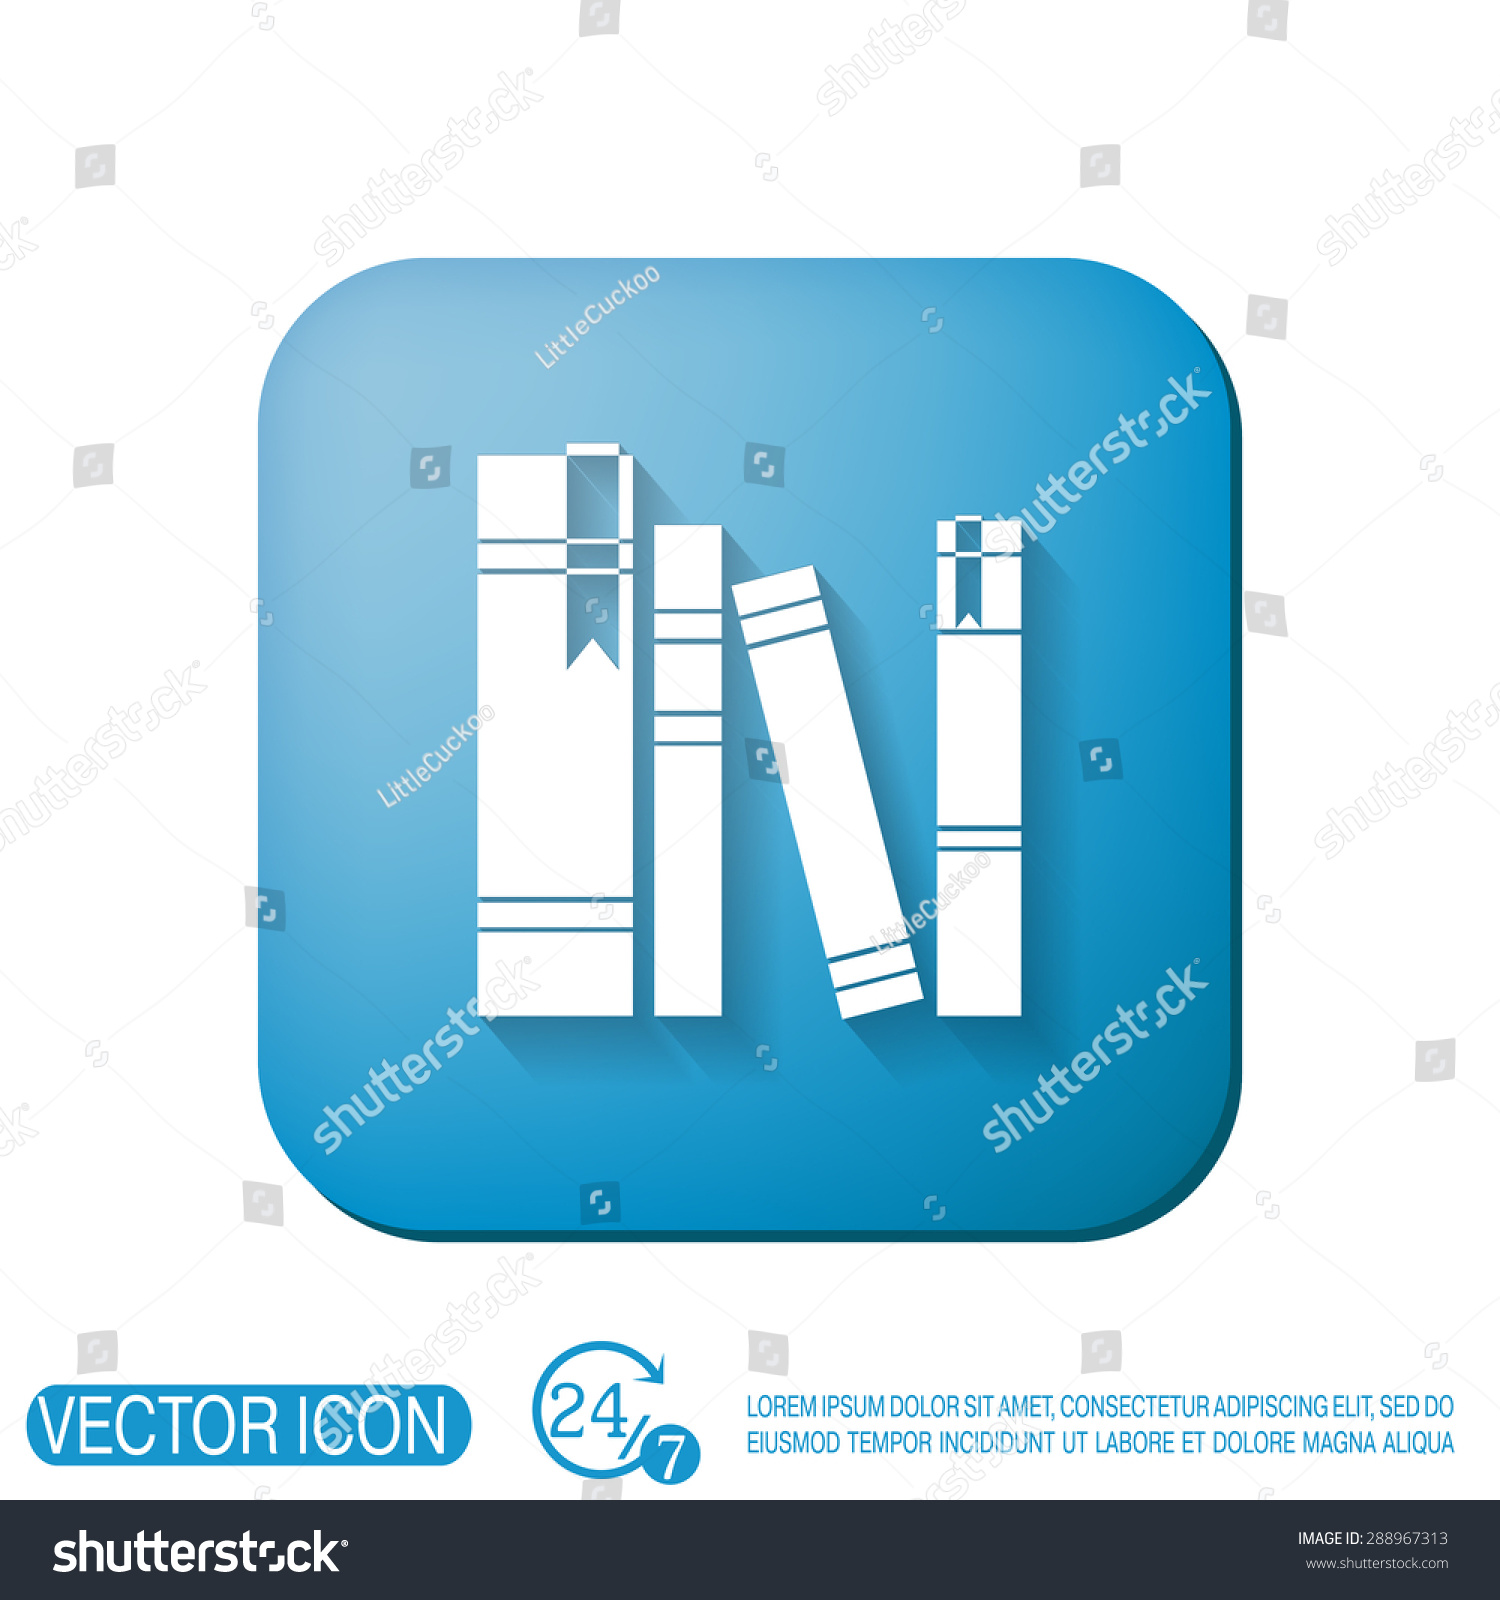 Book Spine Spines Books Icon Symbol Stock Vector 288967313